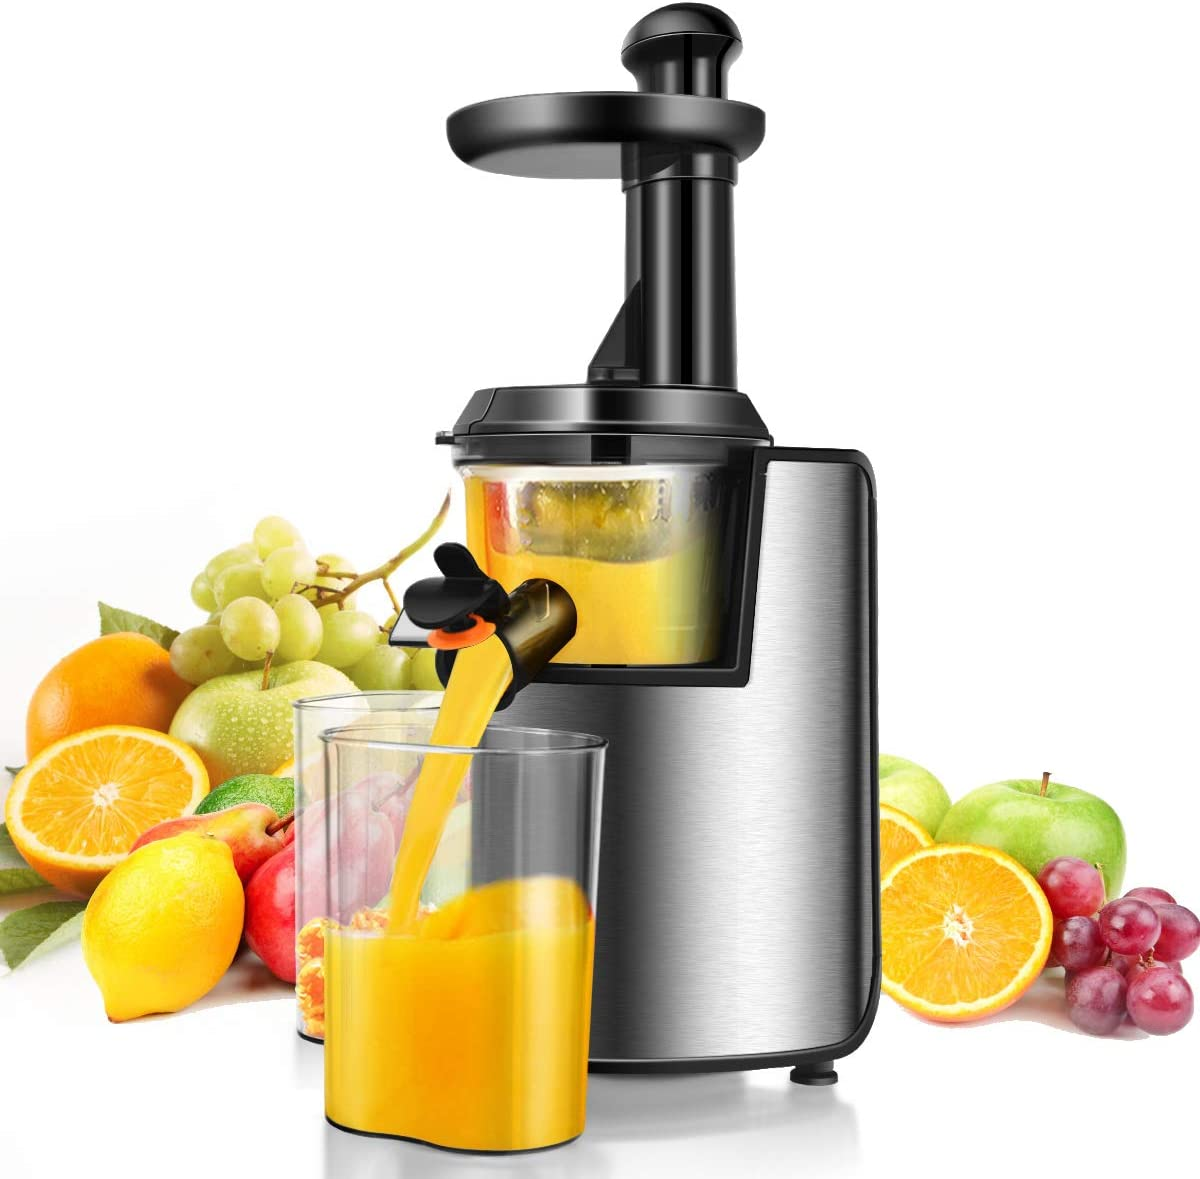 Costway Slow Masticating Juicer with Reverse Function, Cold Press Juicer Machine for Higher Nutrient Fruit and Vegetable Juice, 200W Stainless Steel Juicer Machine with Quiet Motor & BPA-FREE, Easy to Clean